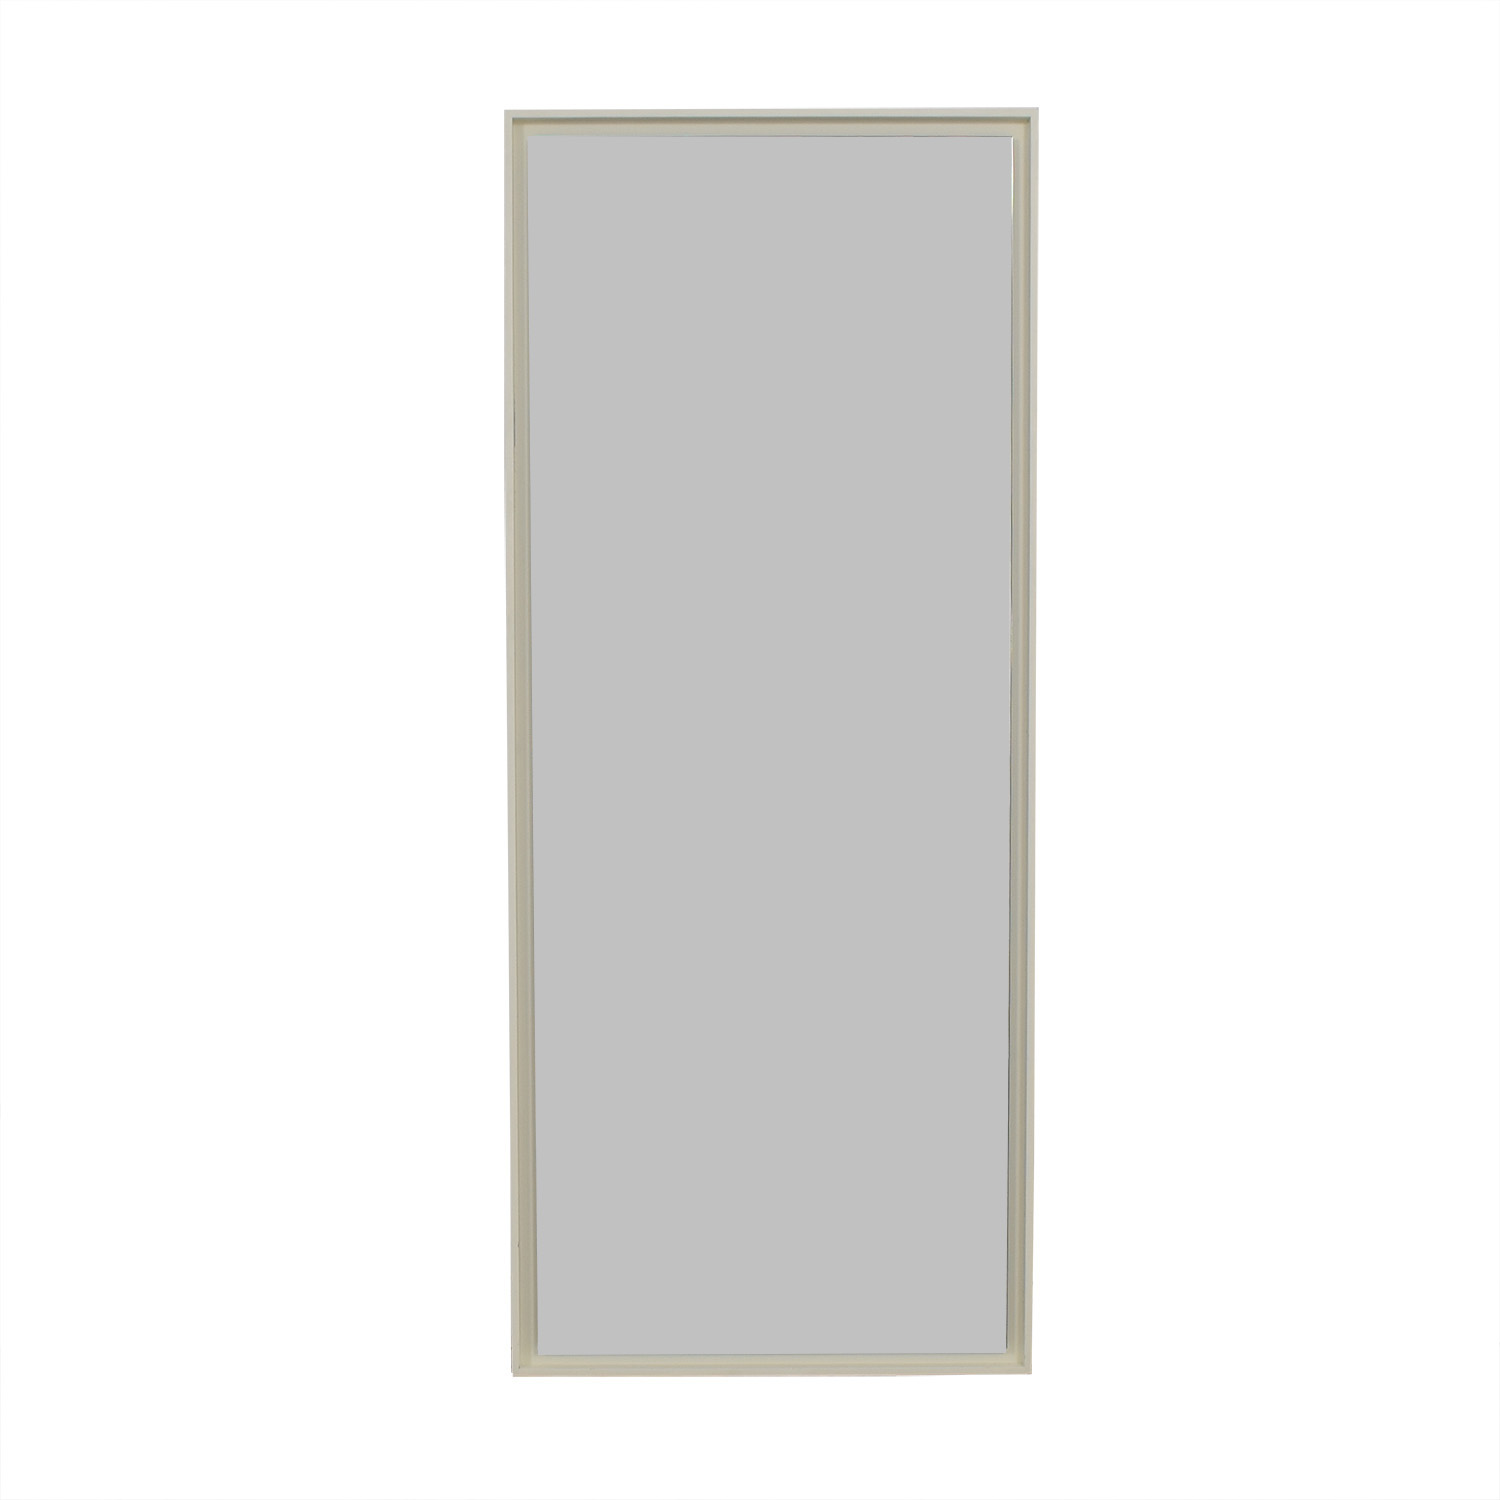 buy West Elm White Floating Mirror West Elm